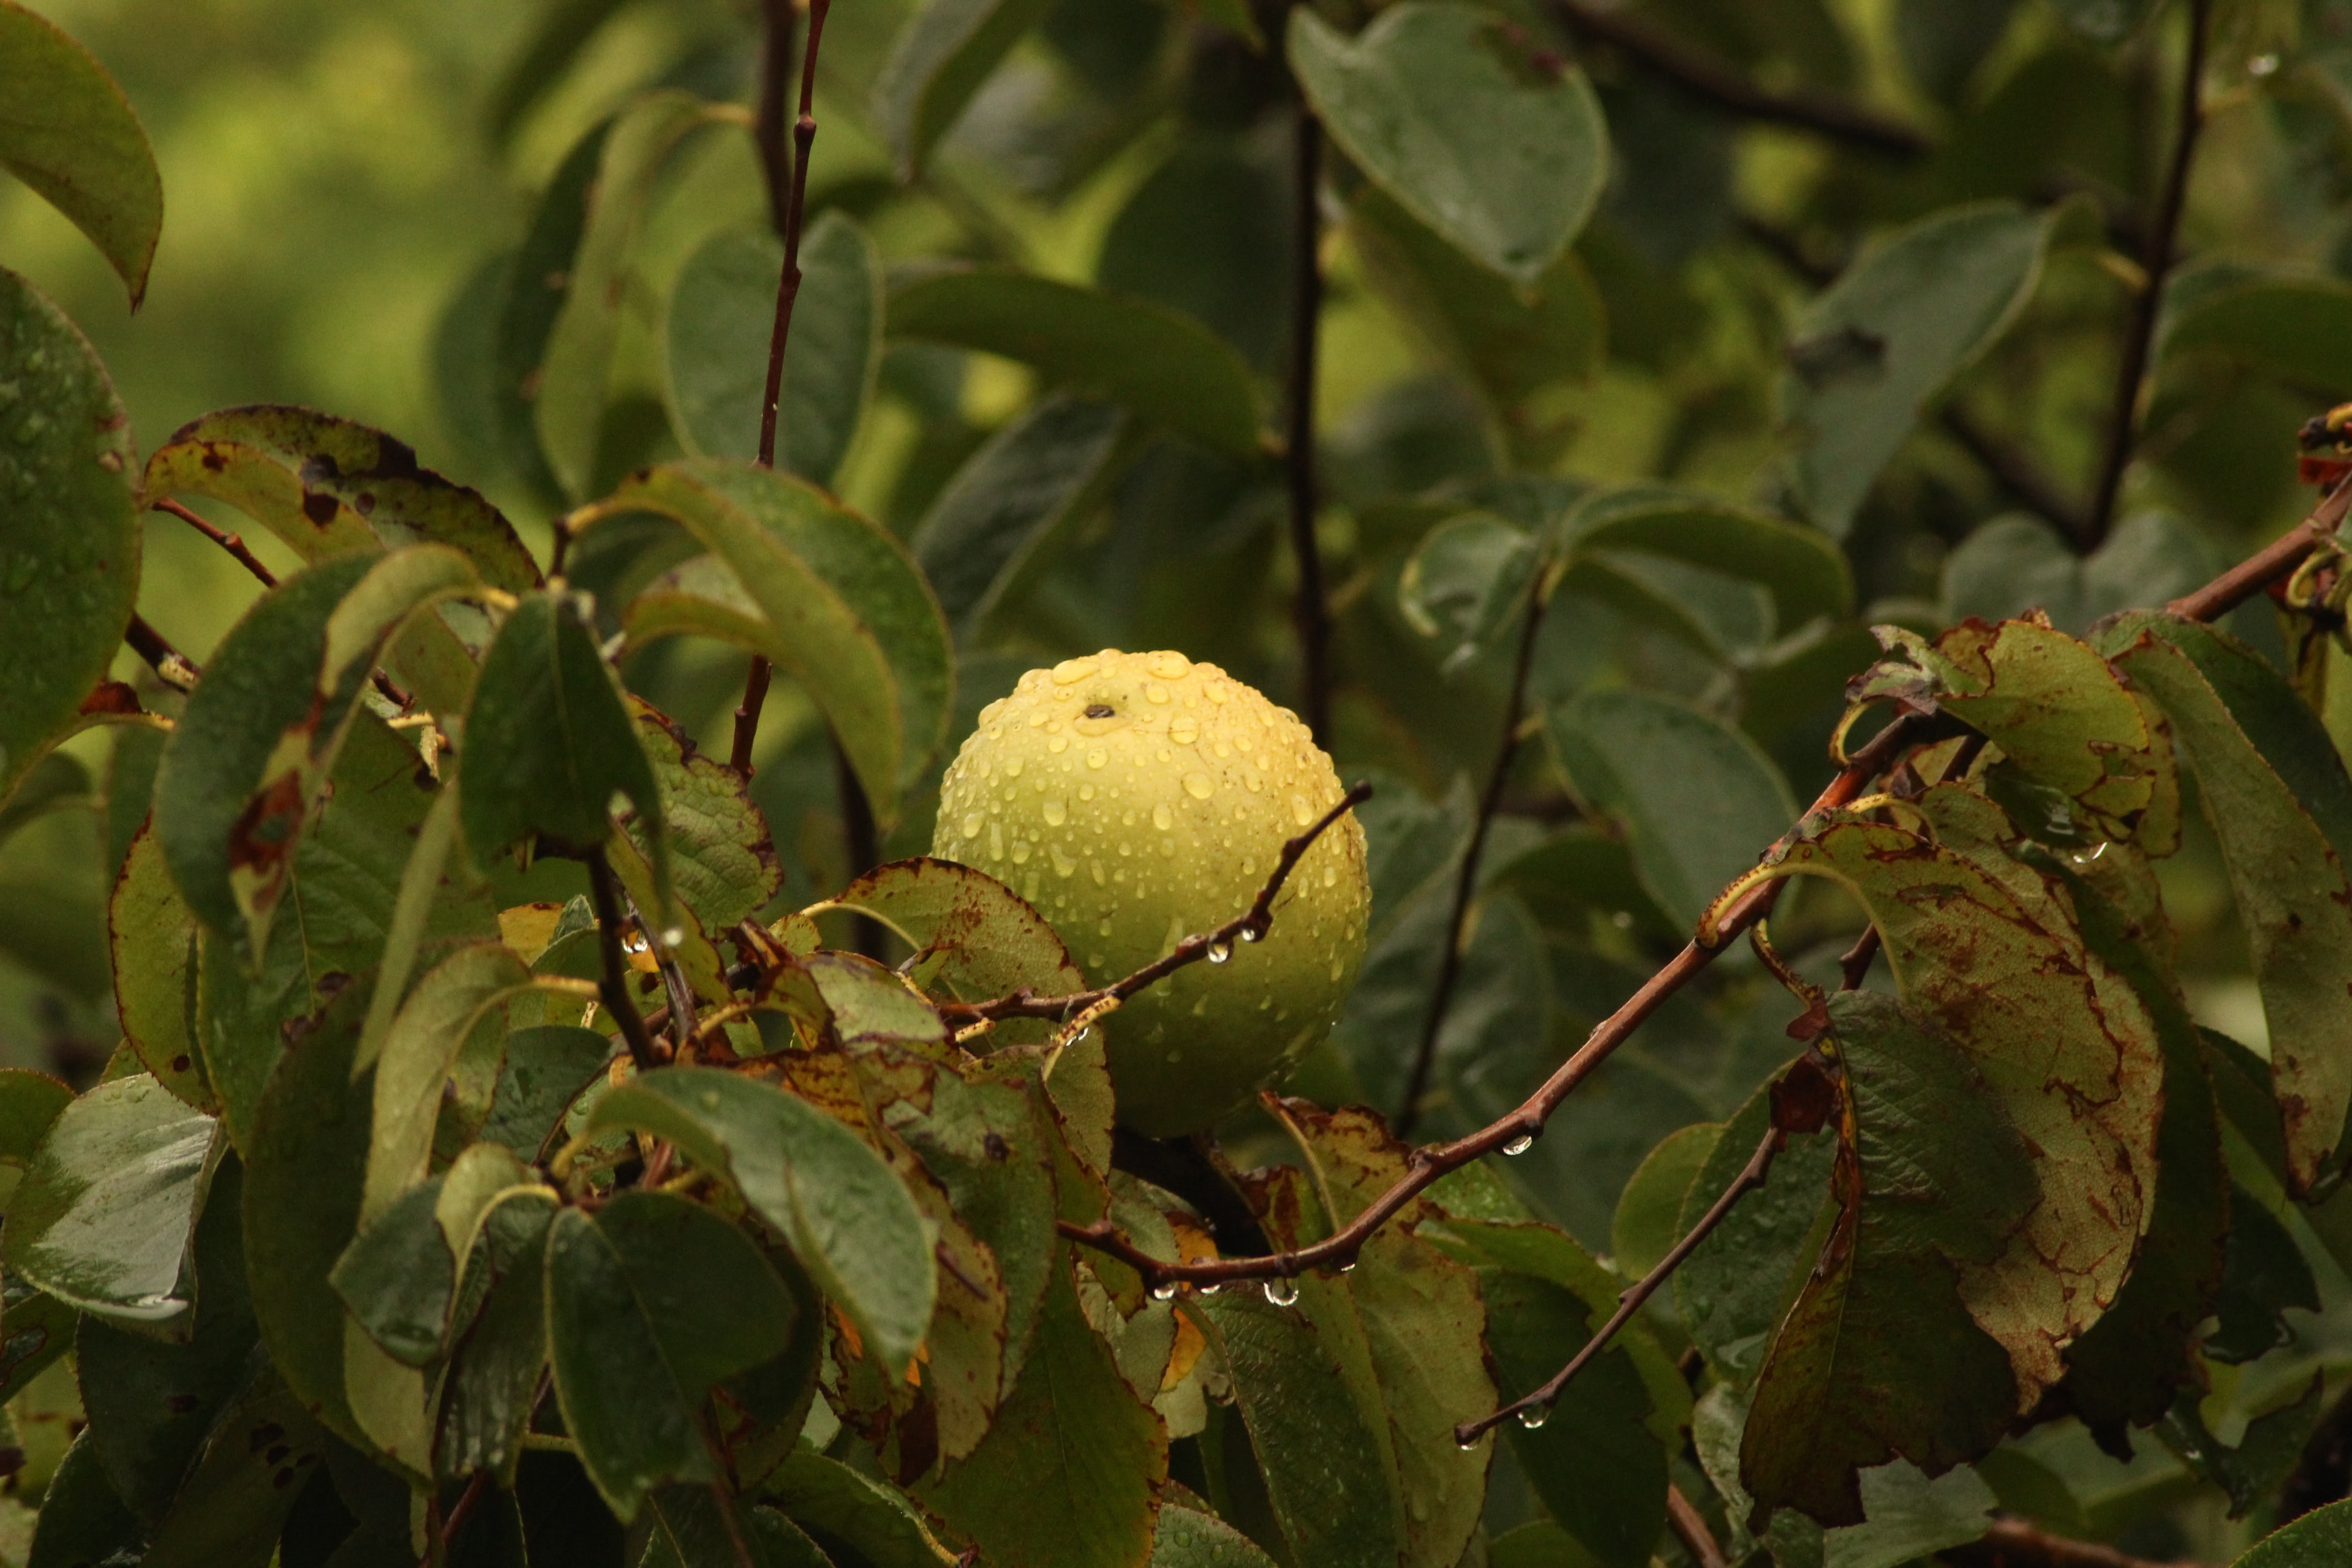 round green fruit on tree